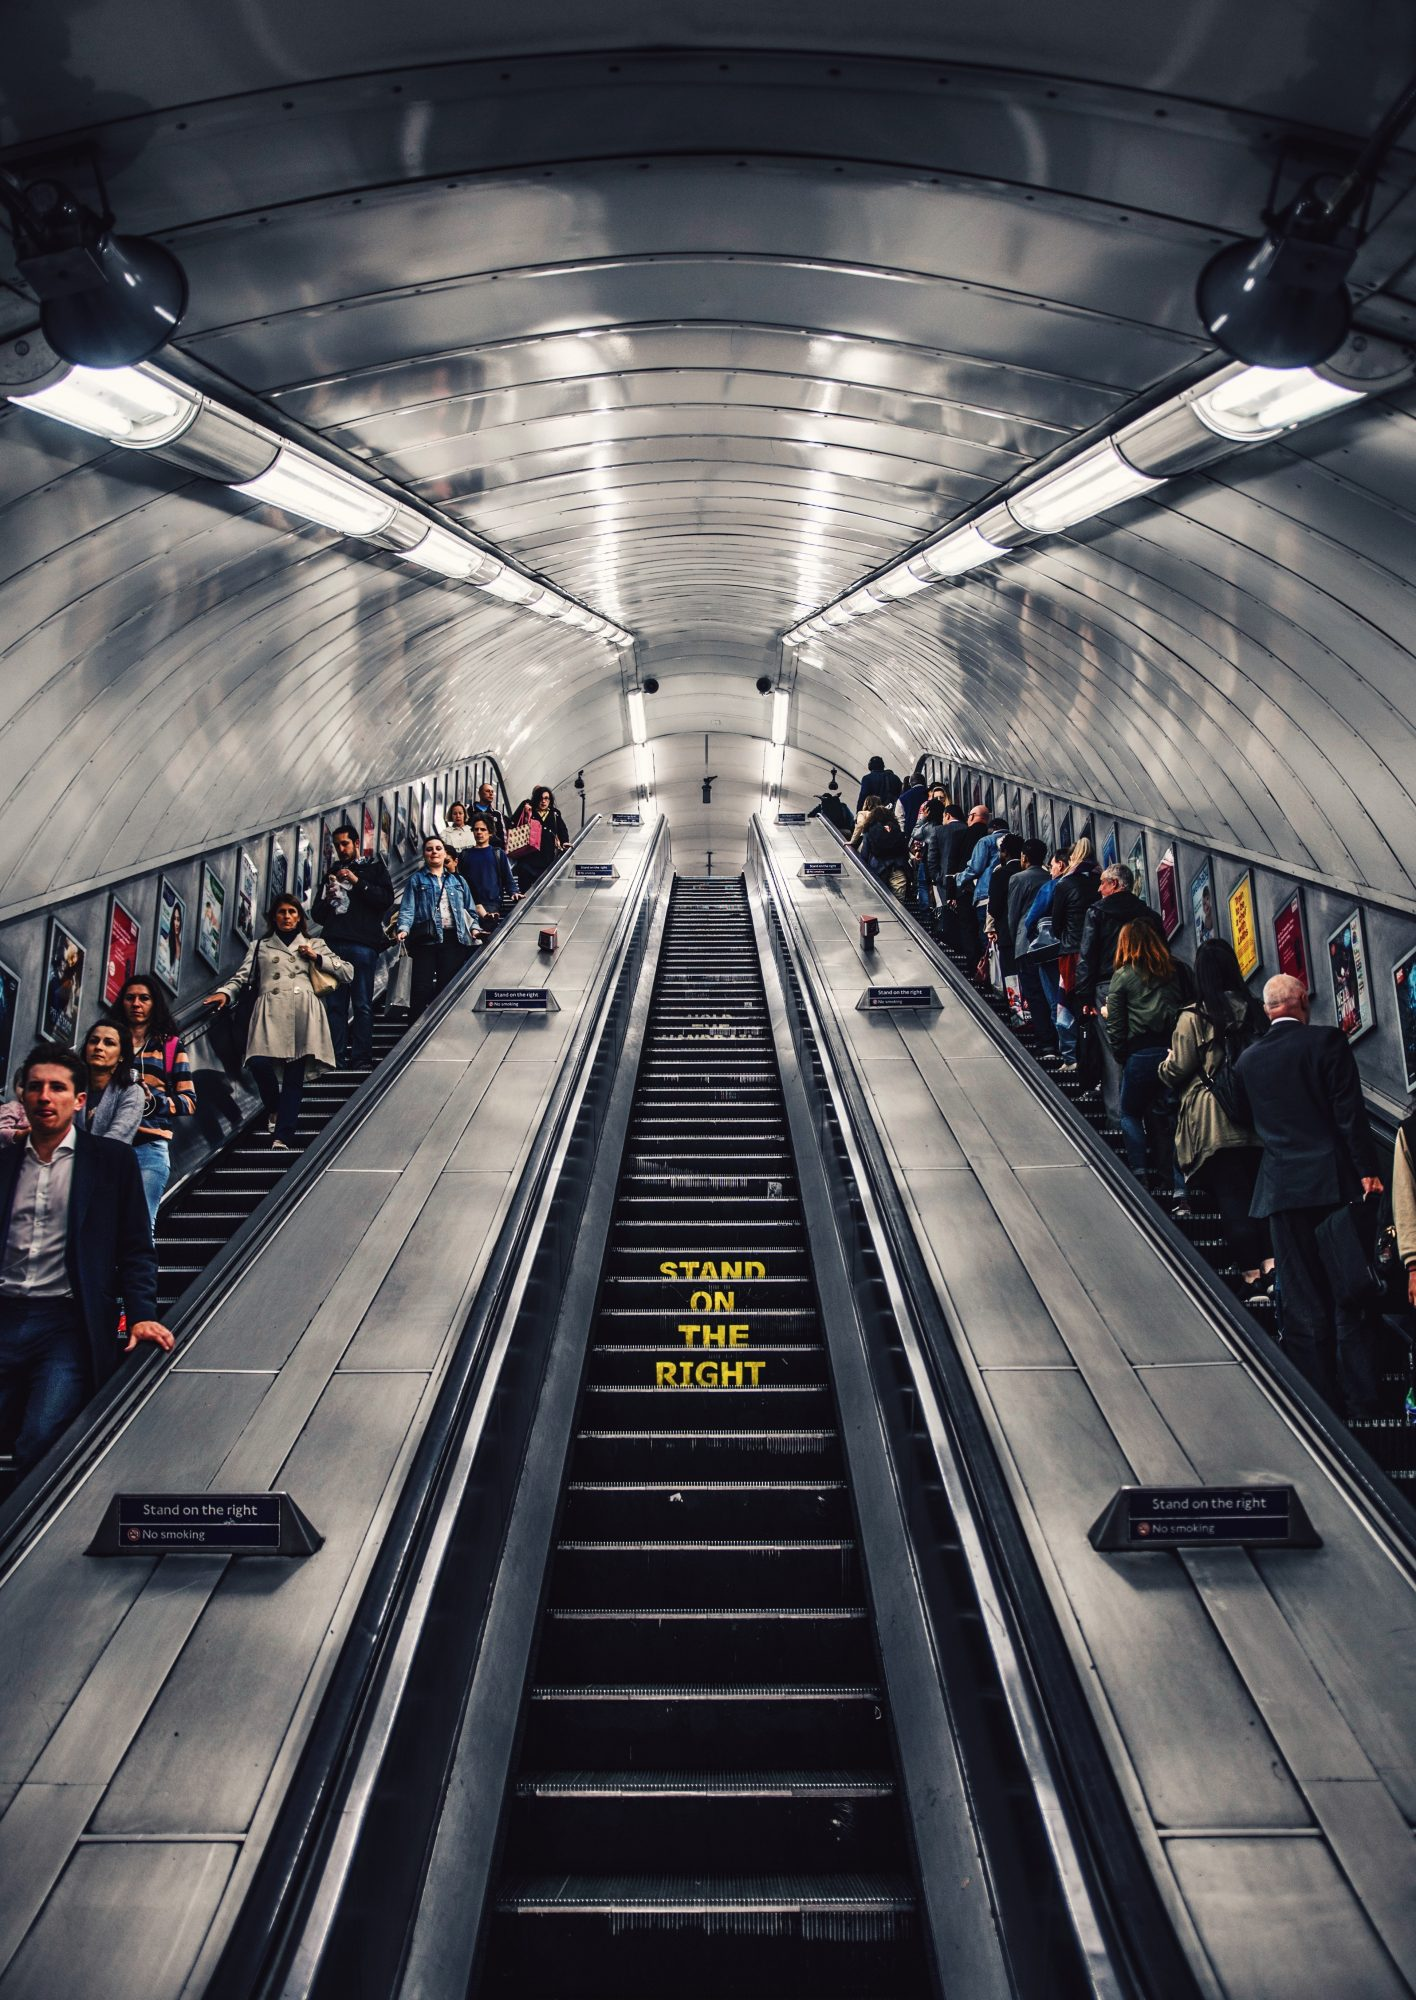 tips for riding the London underground